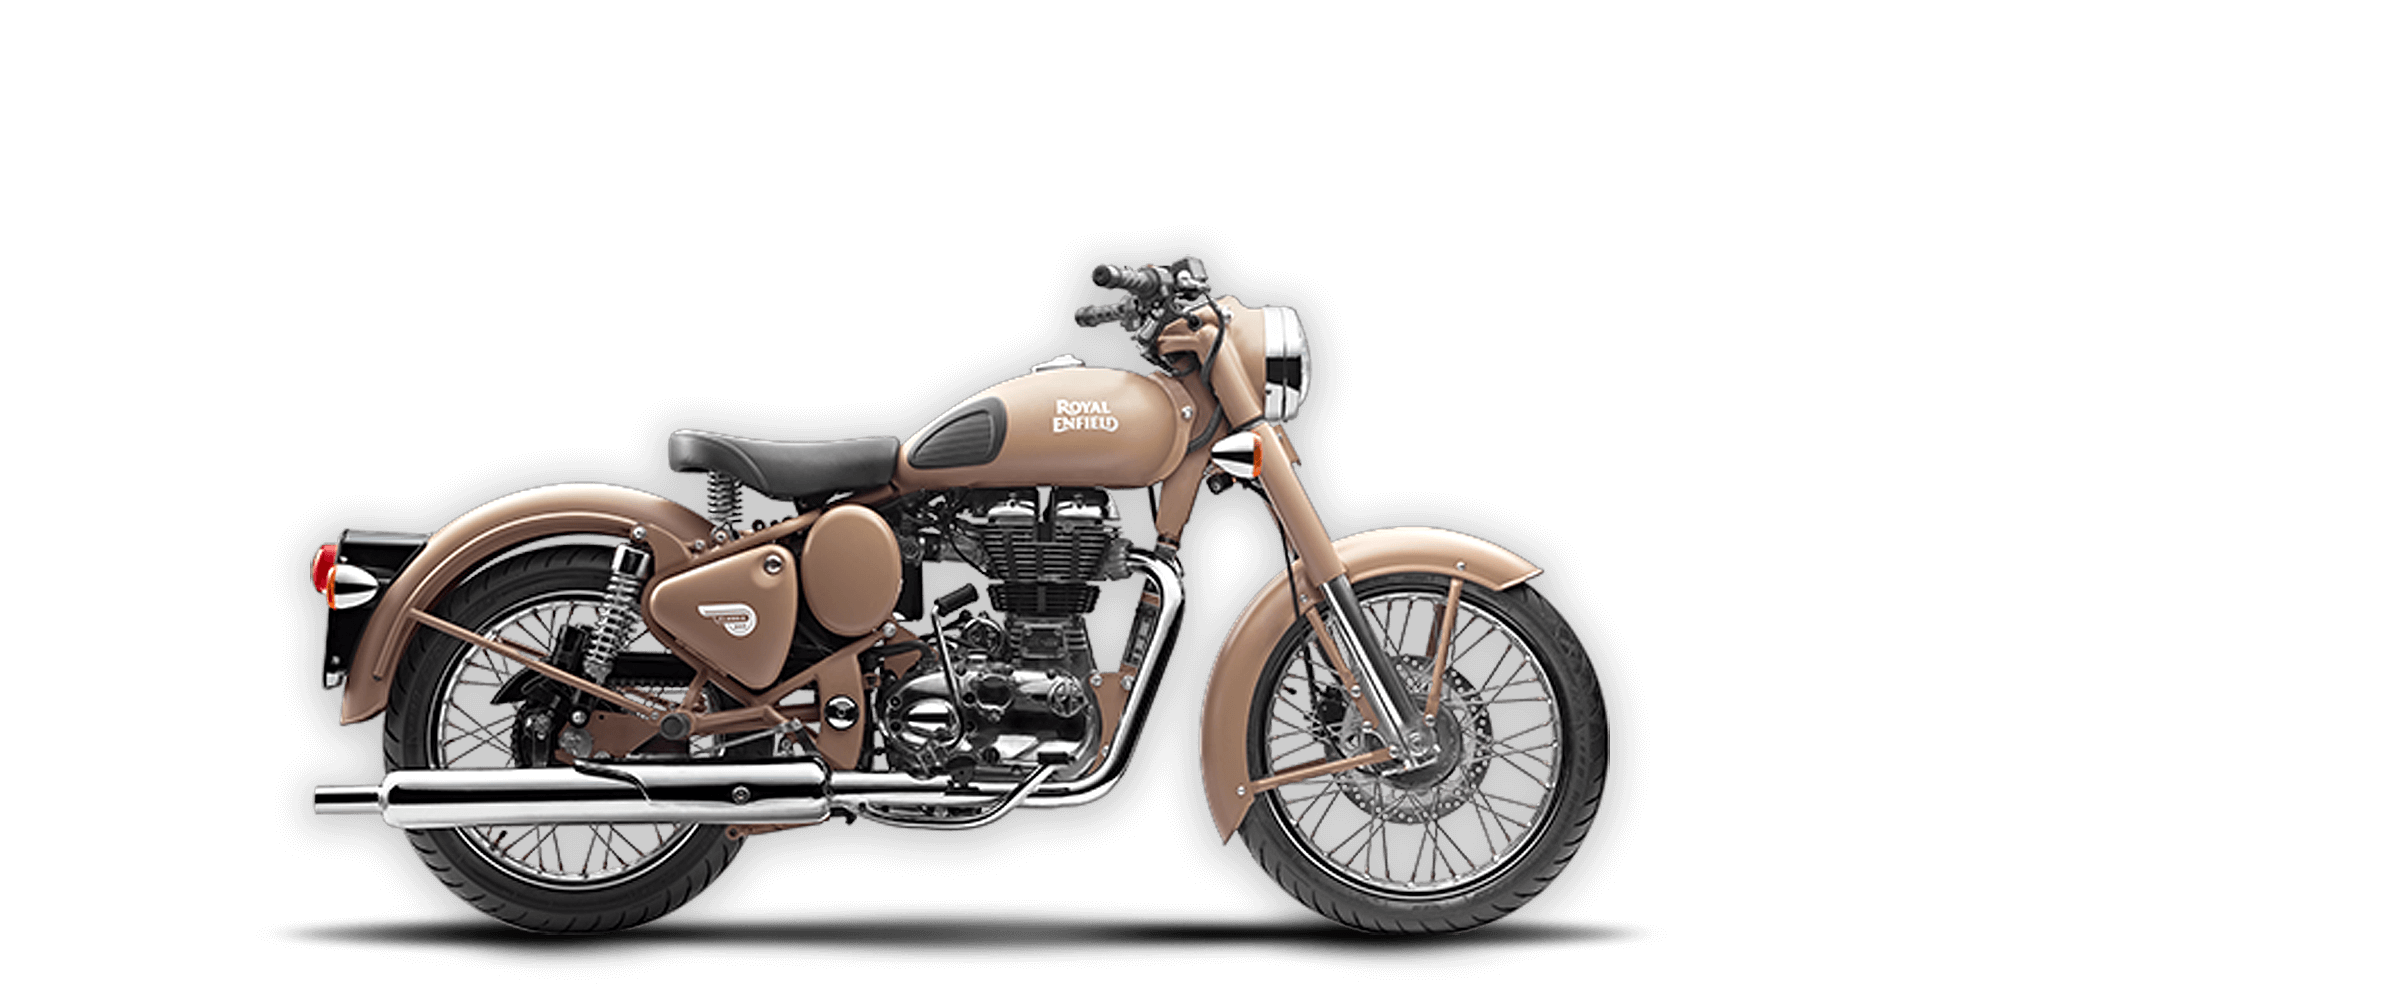 Motorcycle gloves bangalore - Bikes Rent In Bangalore Bike Rentals In Bangalore Rent A Bike In Bangalore